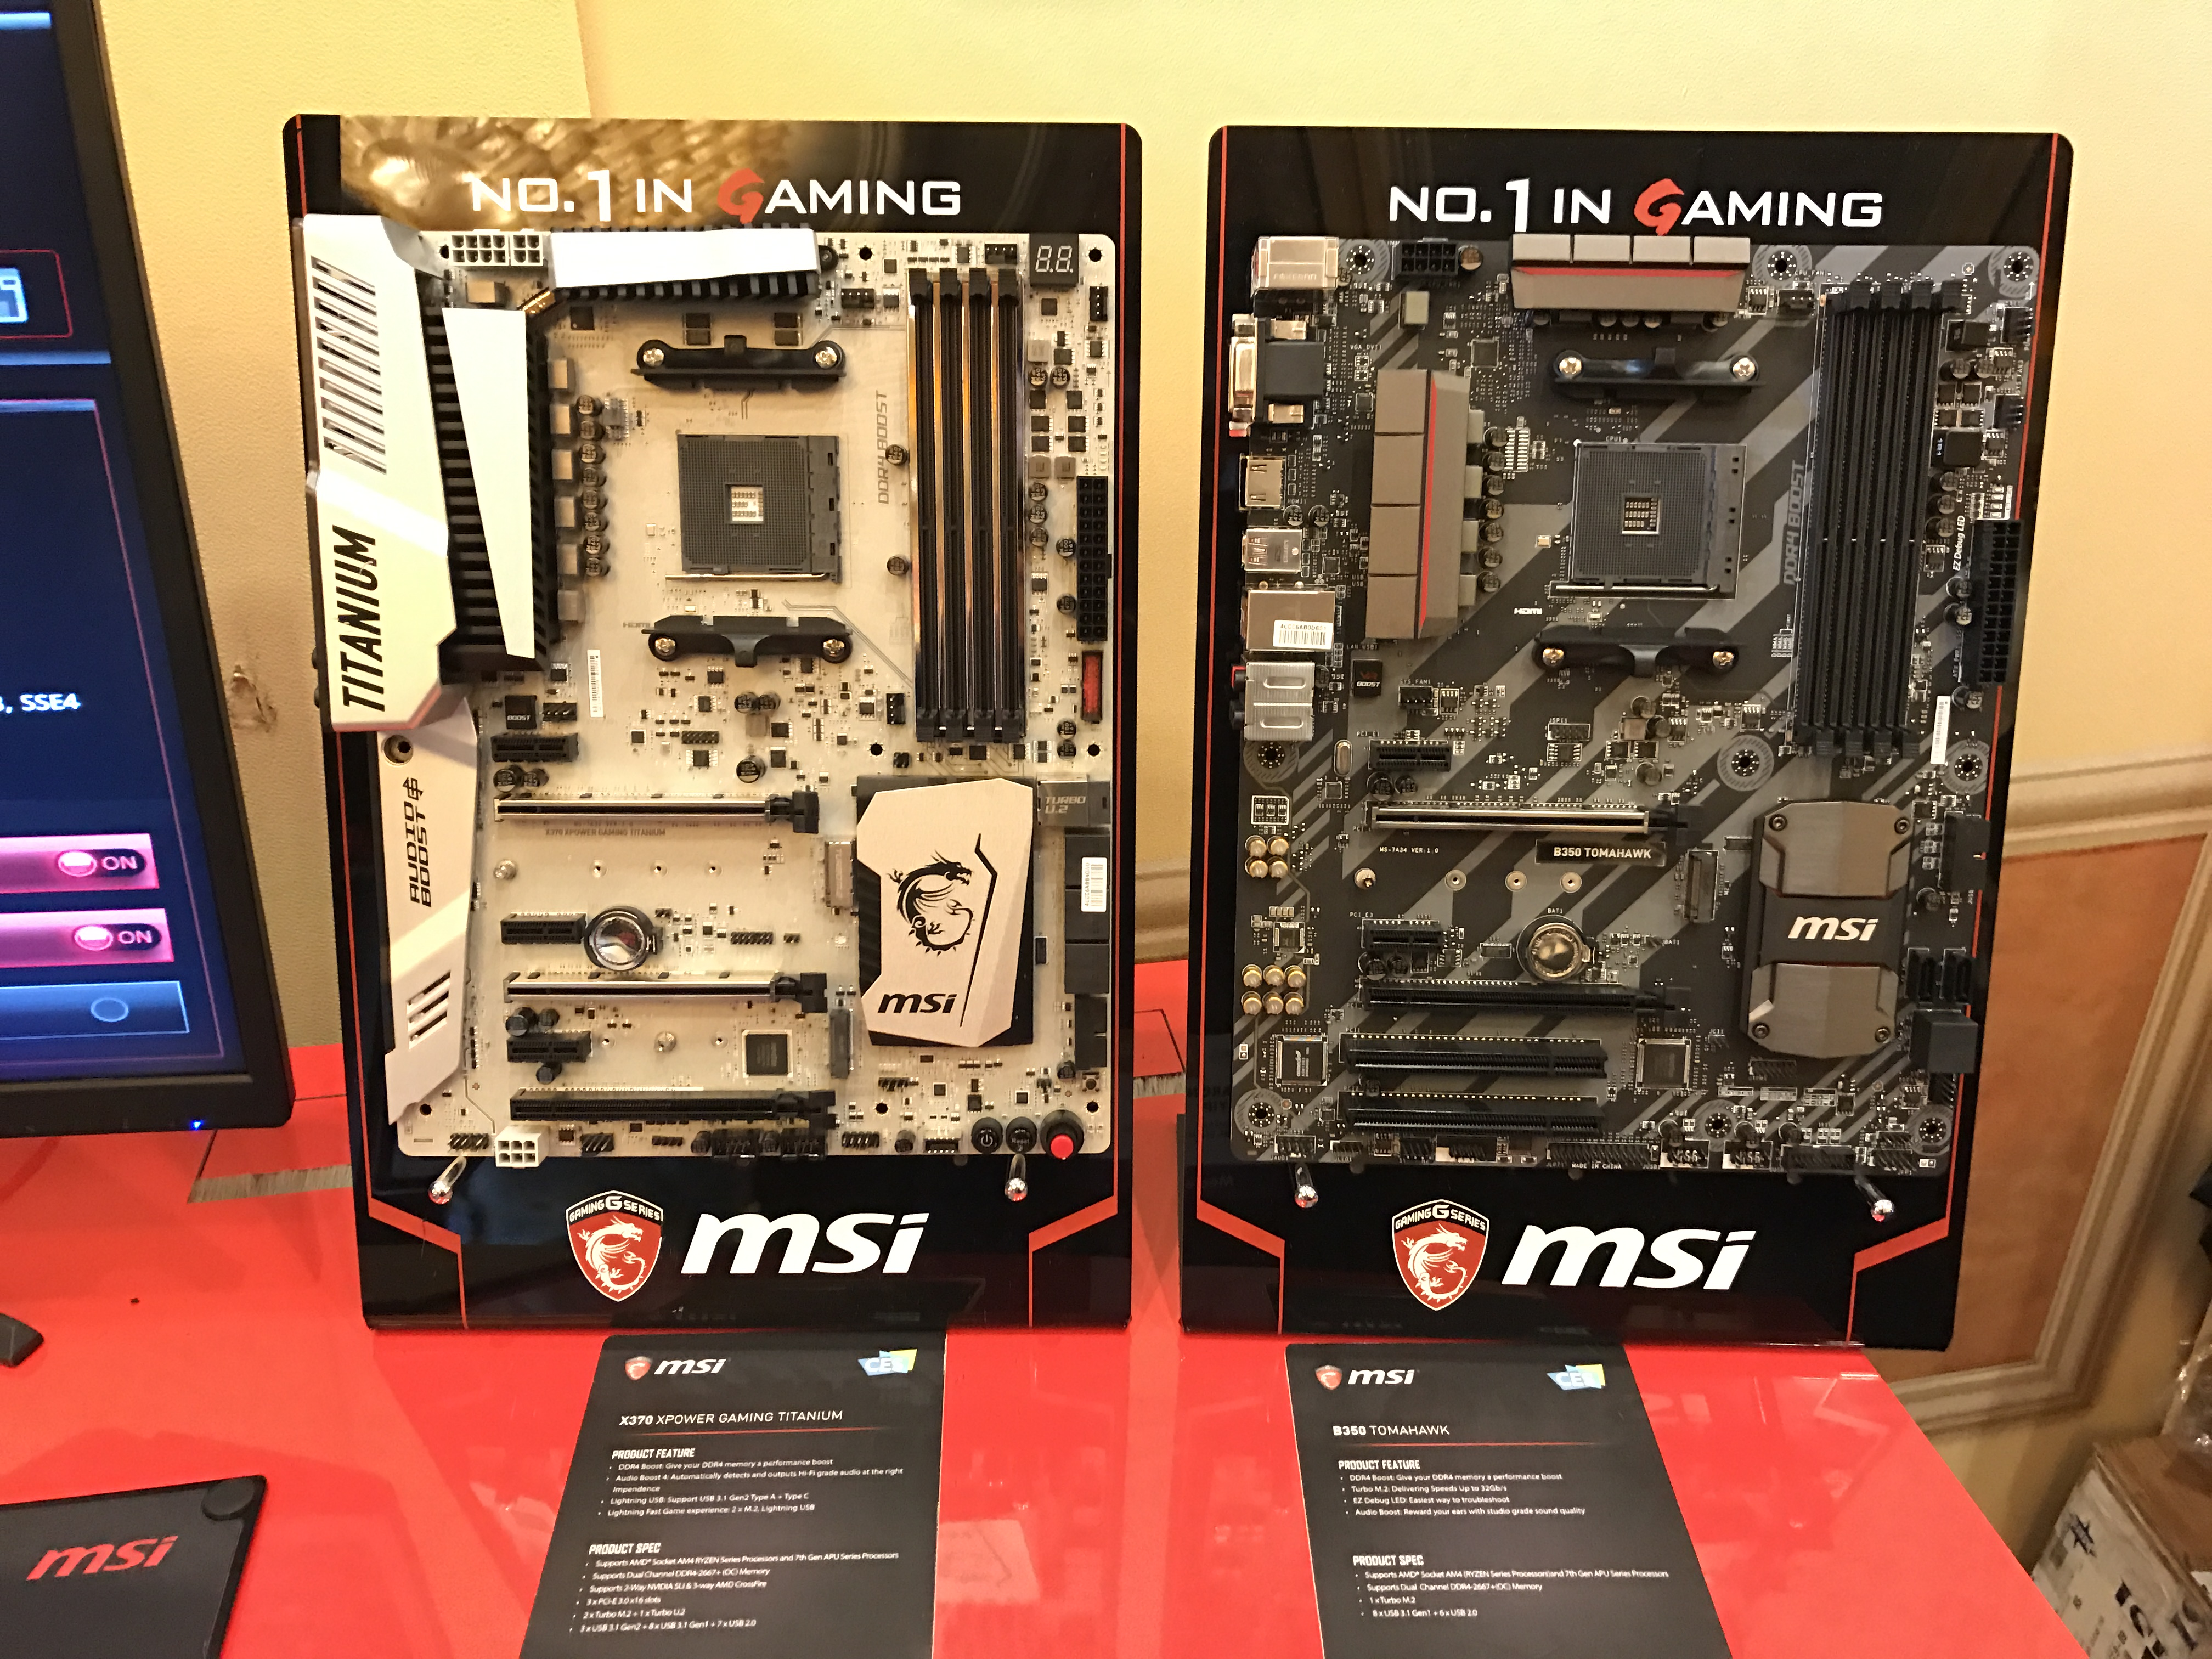 MSI shows off two AM4 Motherboards ready for AMD's Ryzen processors